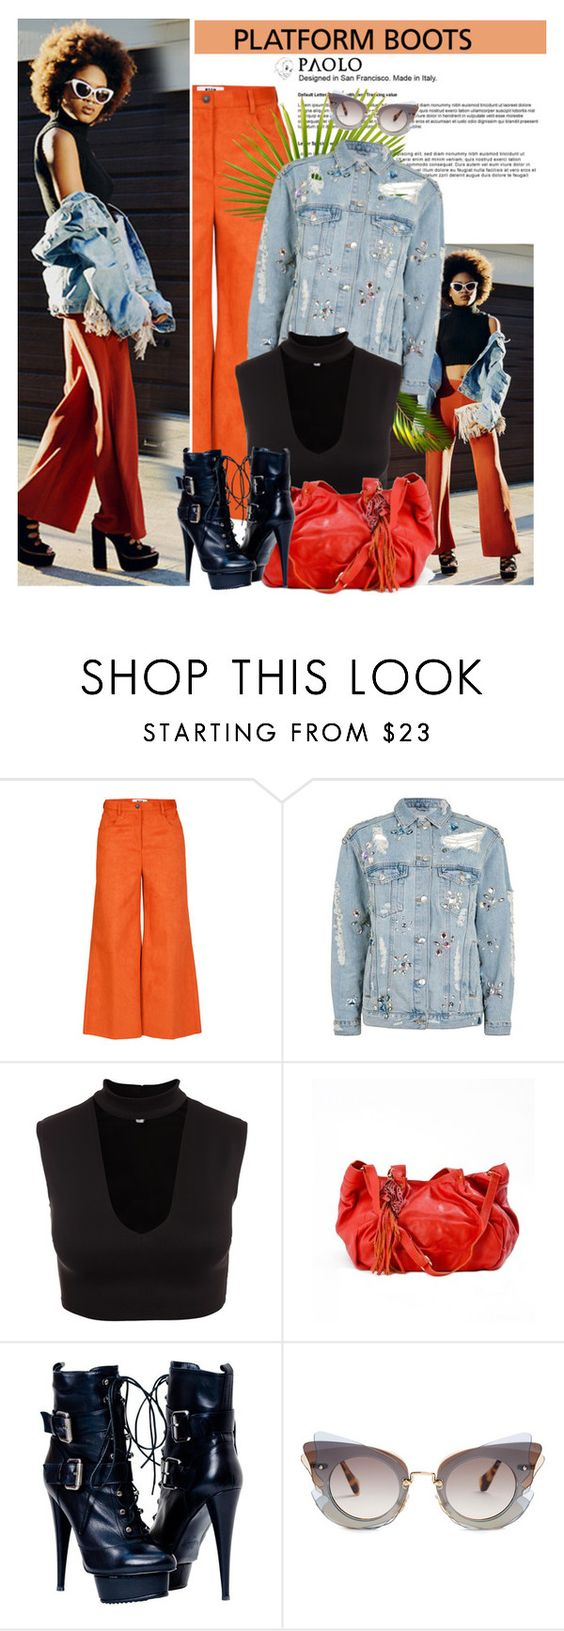 """""""Kickin' It: Platform Boots: PaoloShoes"""" by spenderellastyle ❤ liked on Polyvore featuring Topshop and Miu Miu"""